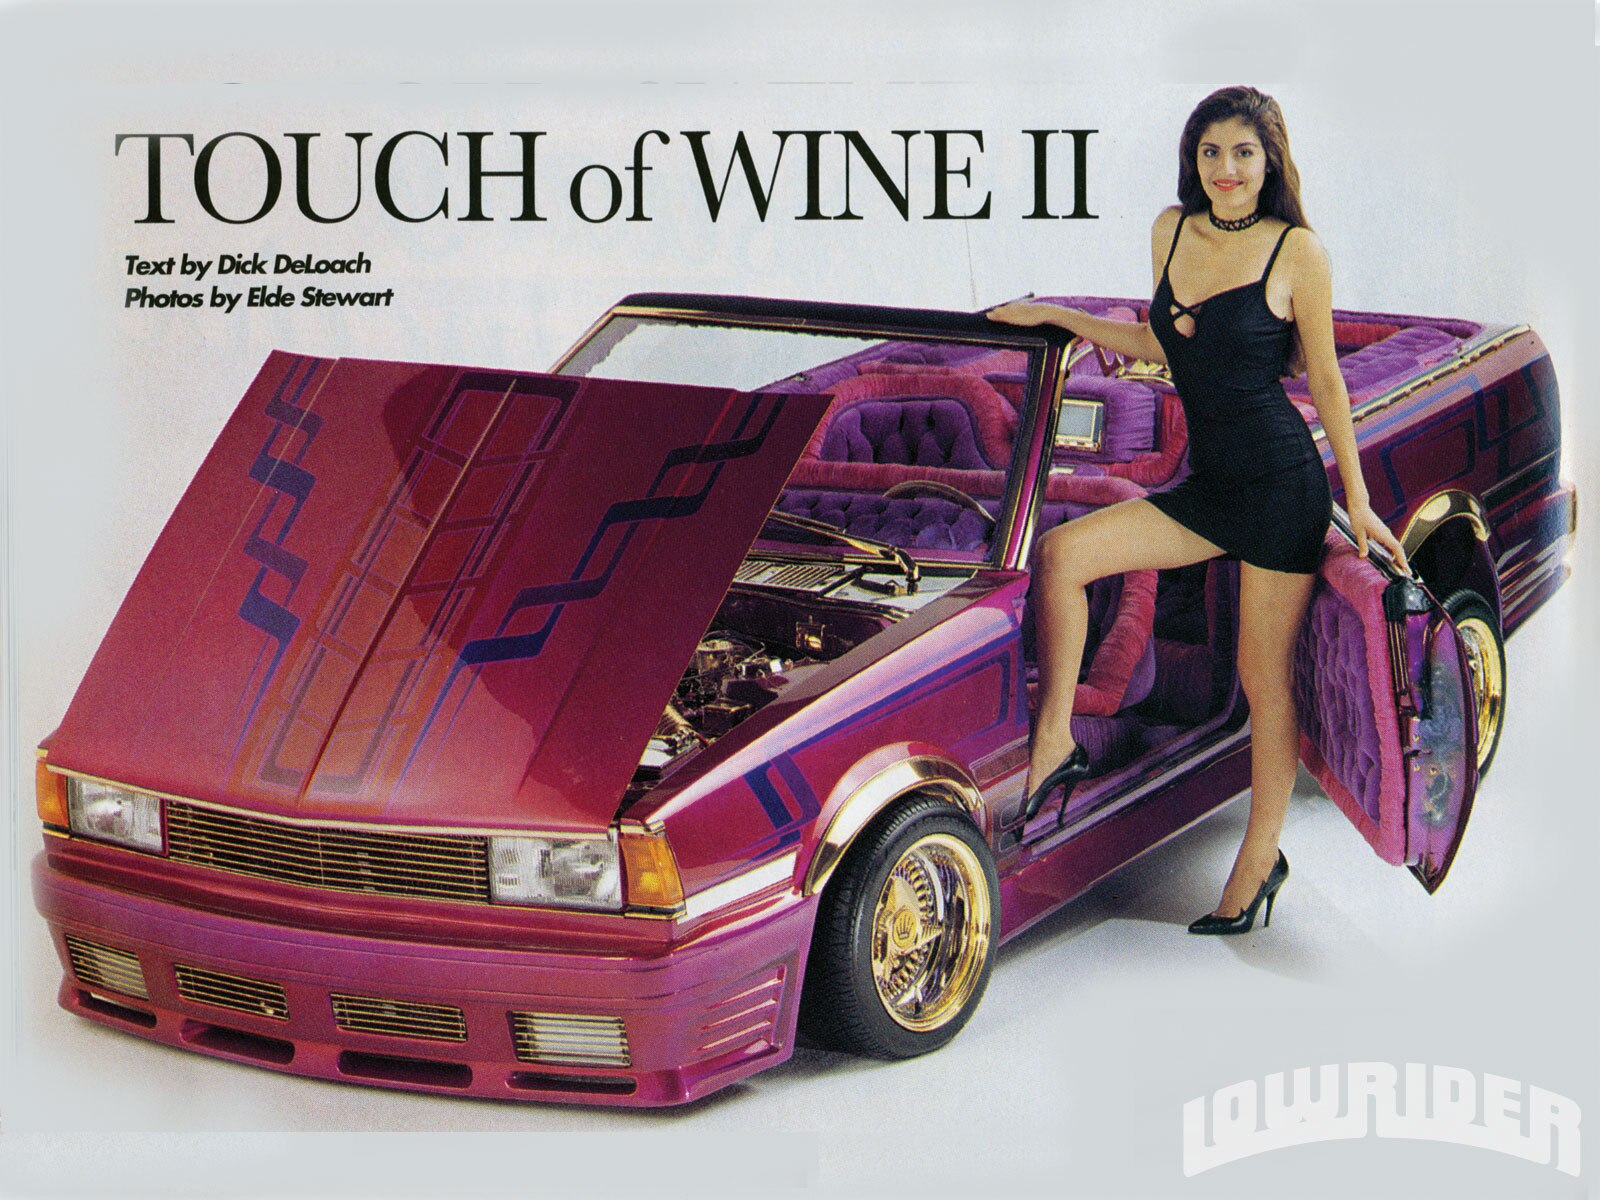 1204-lrmp-01-o-the-changing-lowrider-scene-touch-of-wine-II1